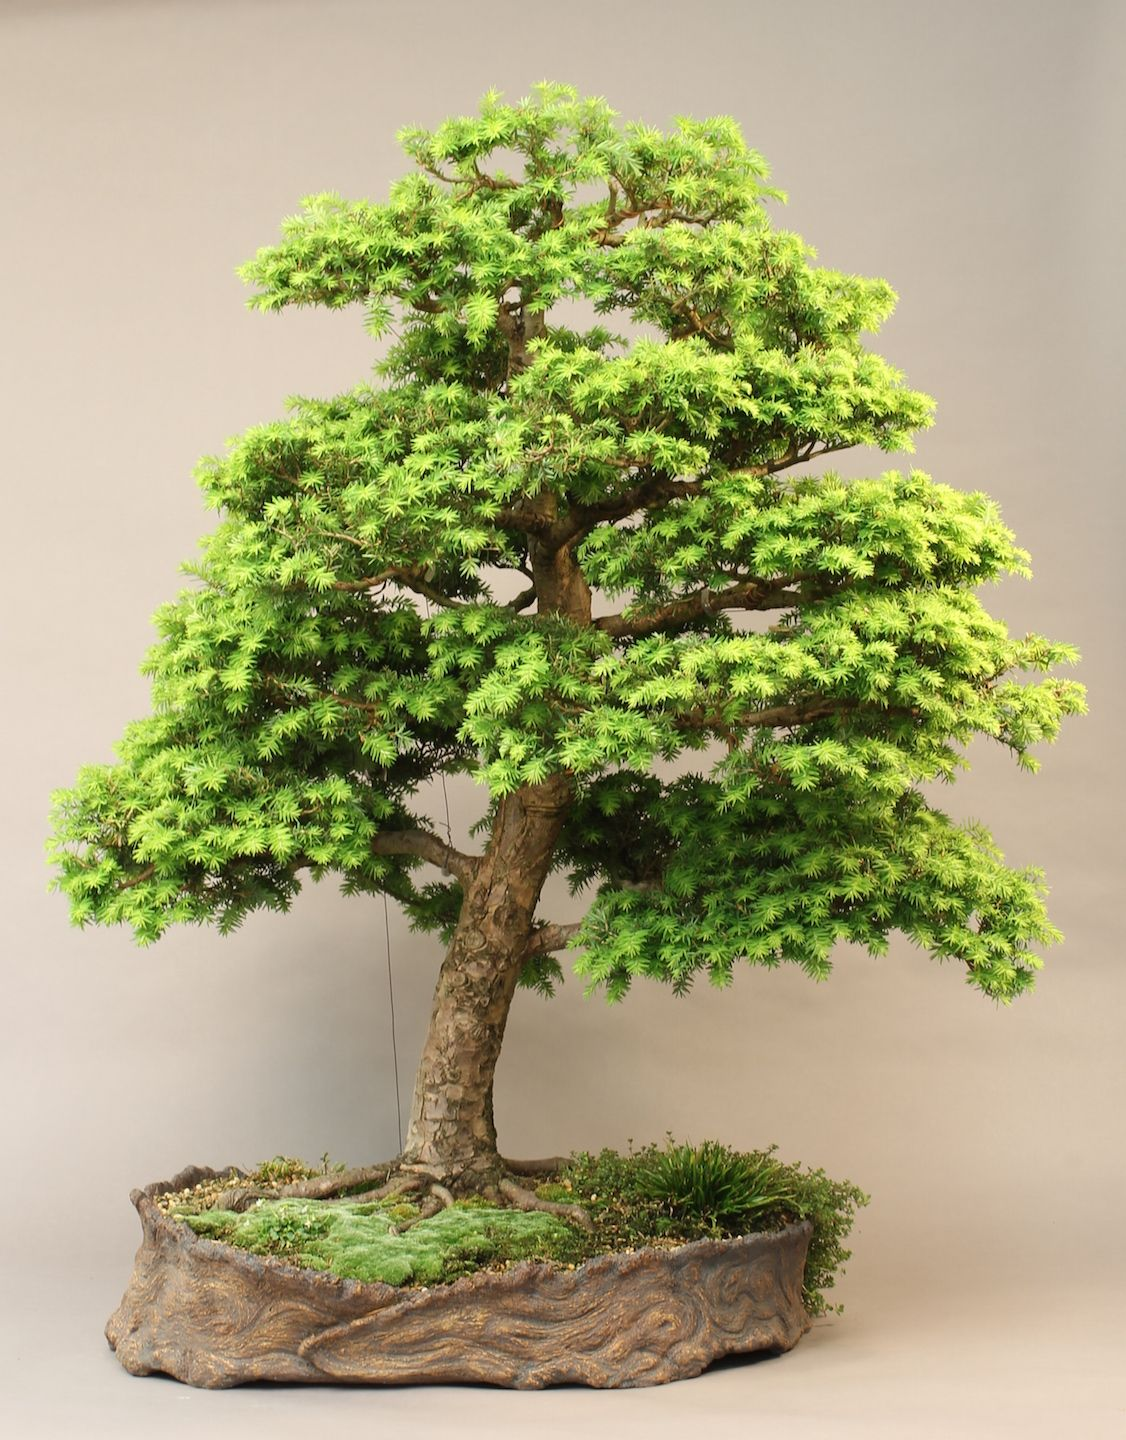 Tsuga Canadensis Eastern Hemlock Bonsai More Than 20 Years After Wild Collection By Abcarve On Bonsainut Forums He Says Regular Tree Seeds Canadensis Bonsai